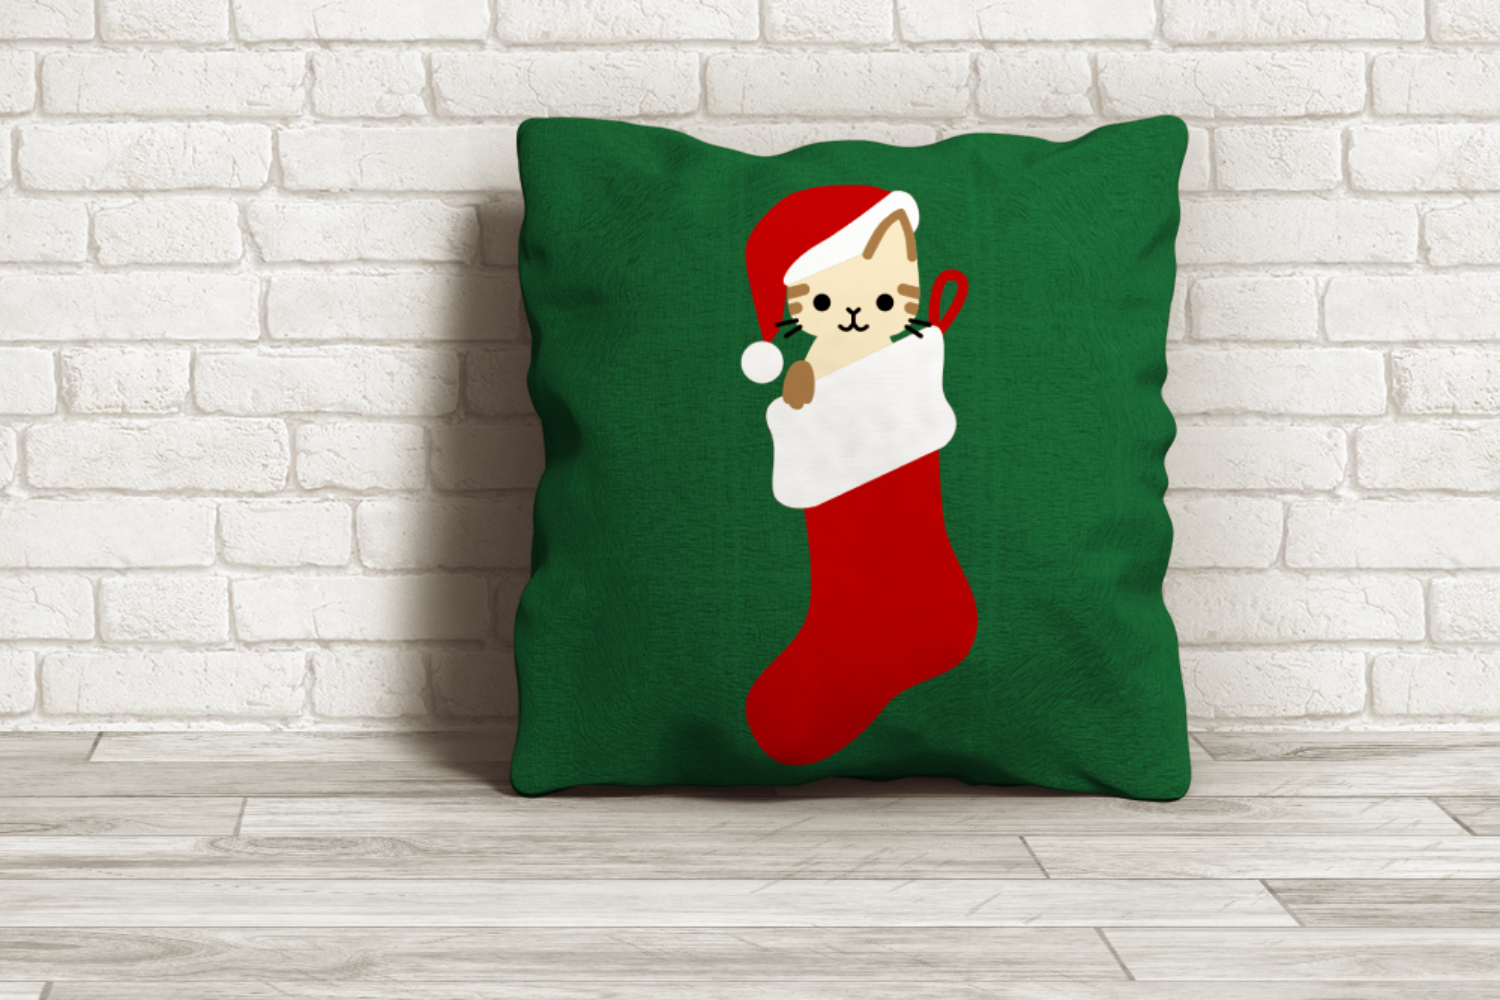 Download Free Christmas Stocking Cat Graphic By Risarocksit Creative Fabrica for Cricut Explore, Silhouette and other cutting machines.